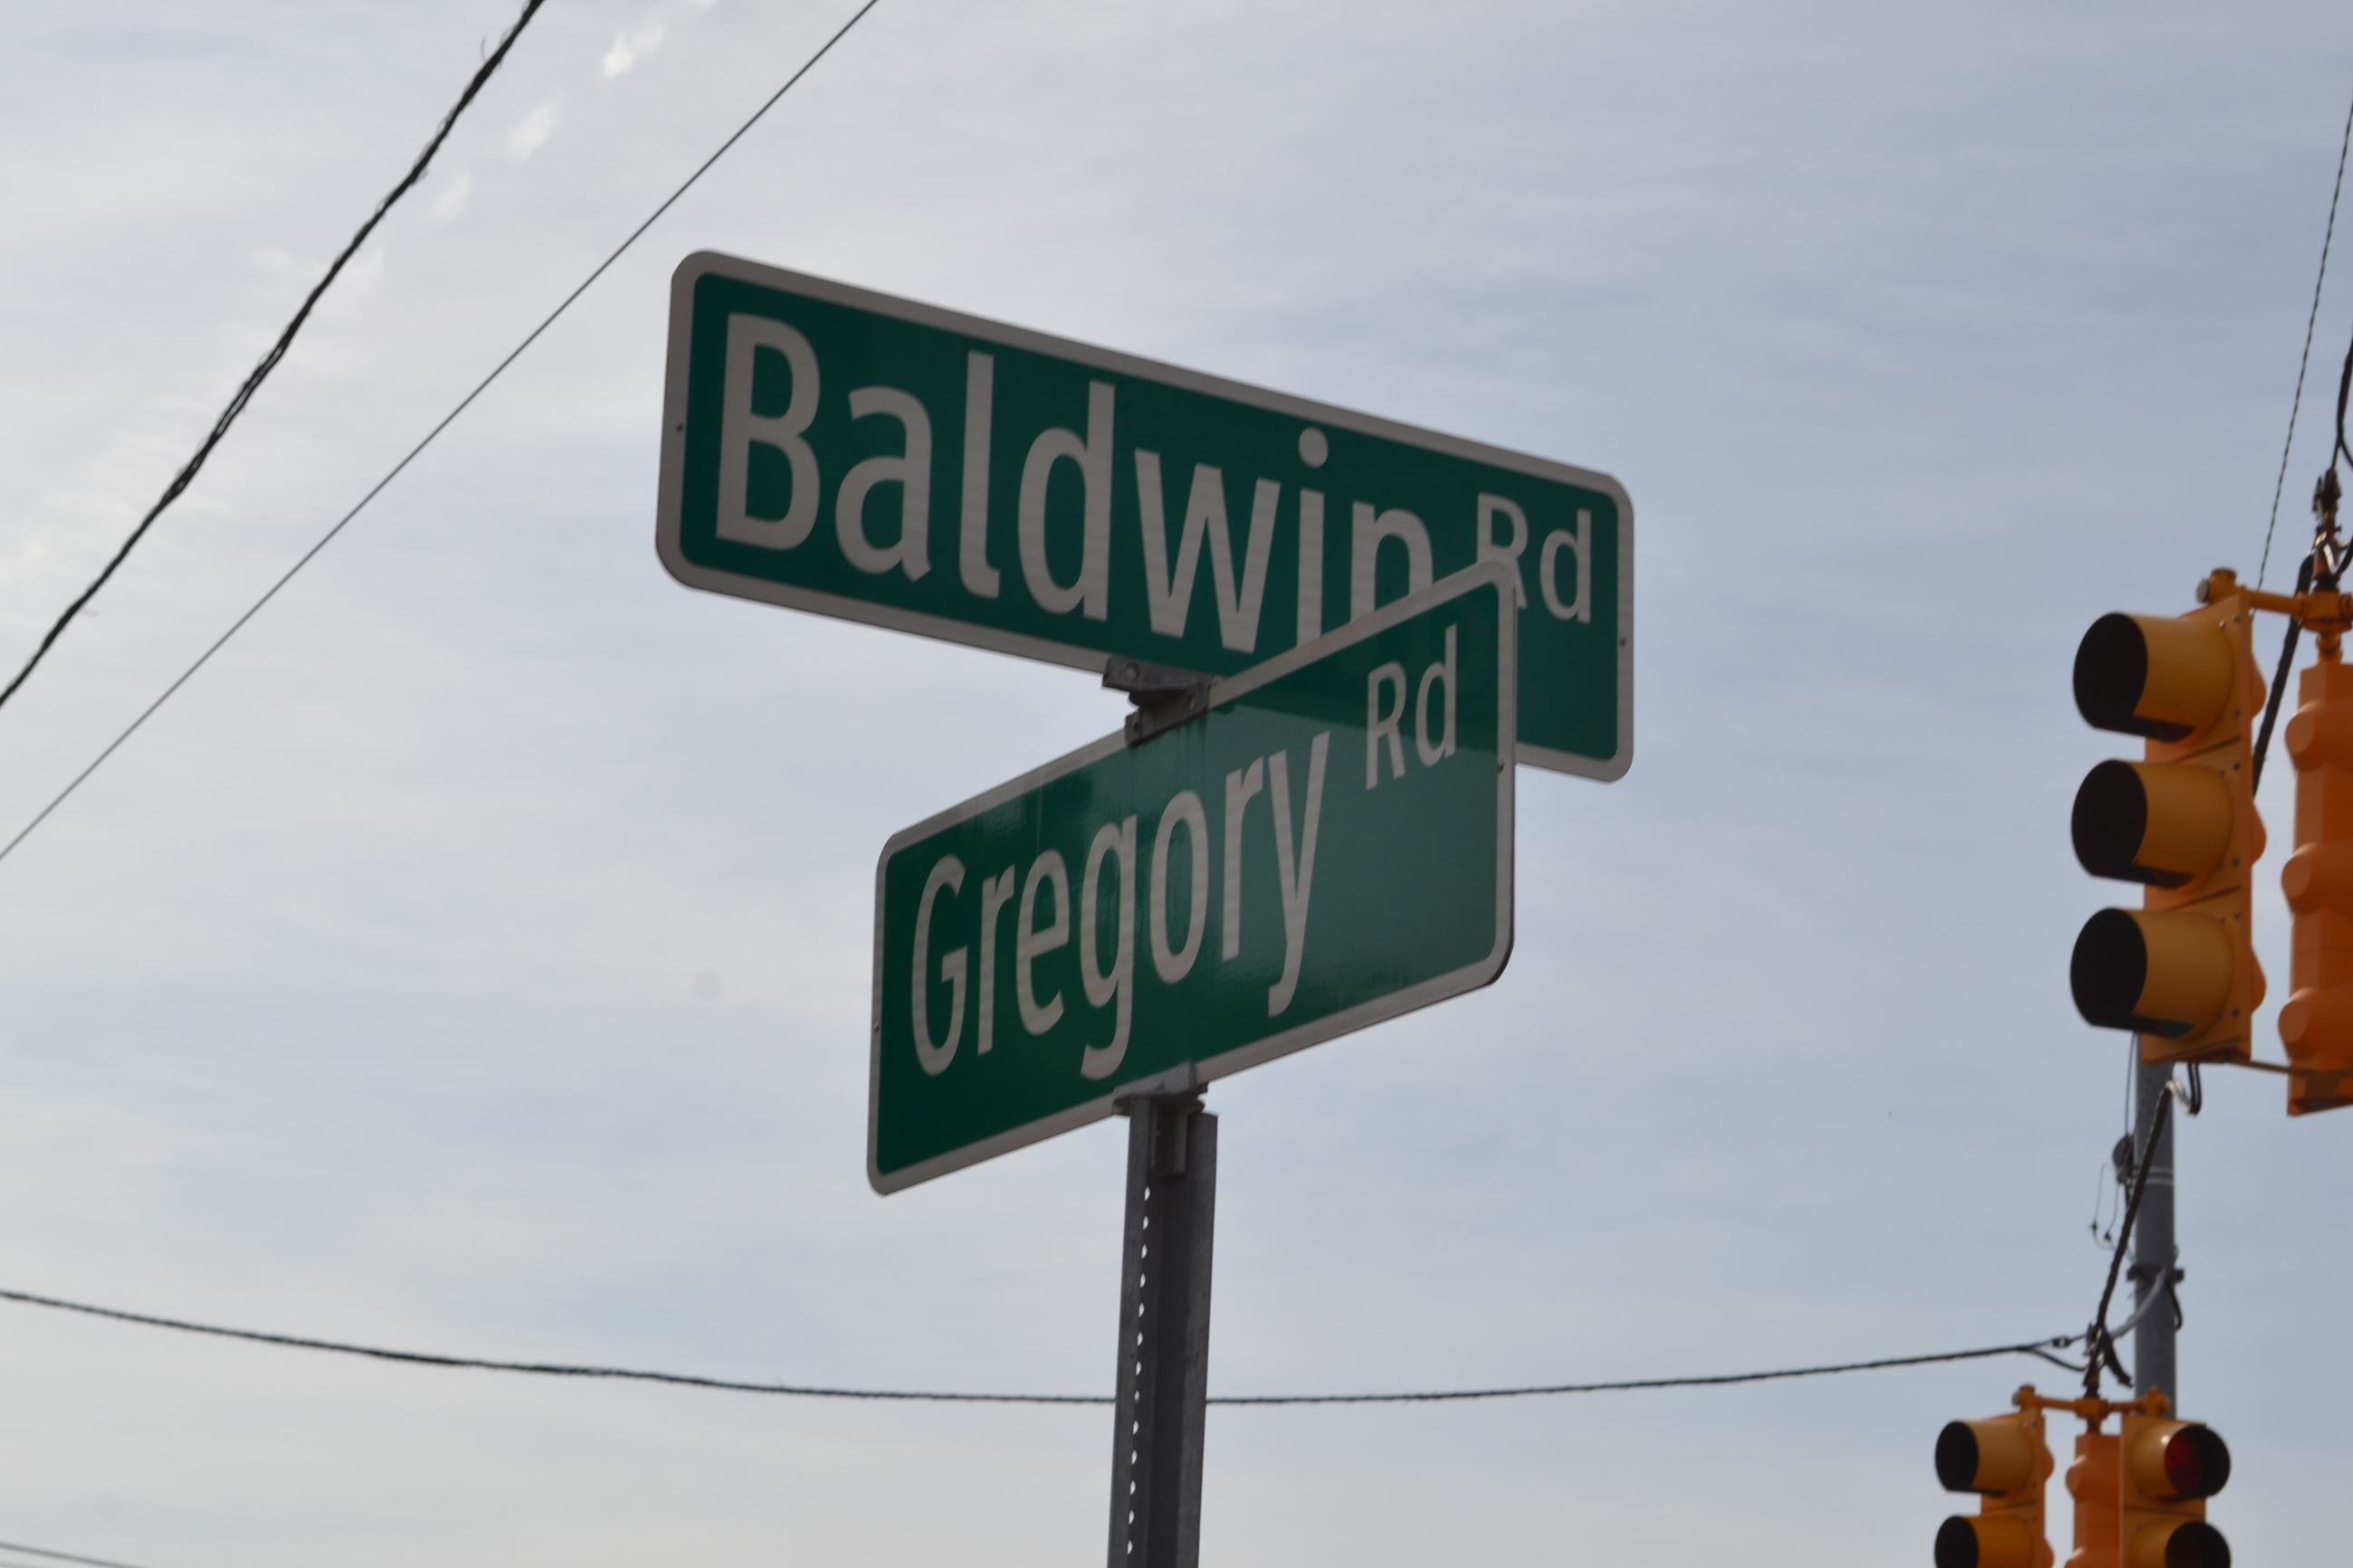 Baldwin/Gregory Sign